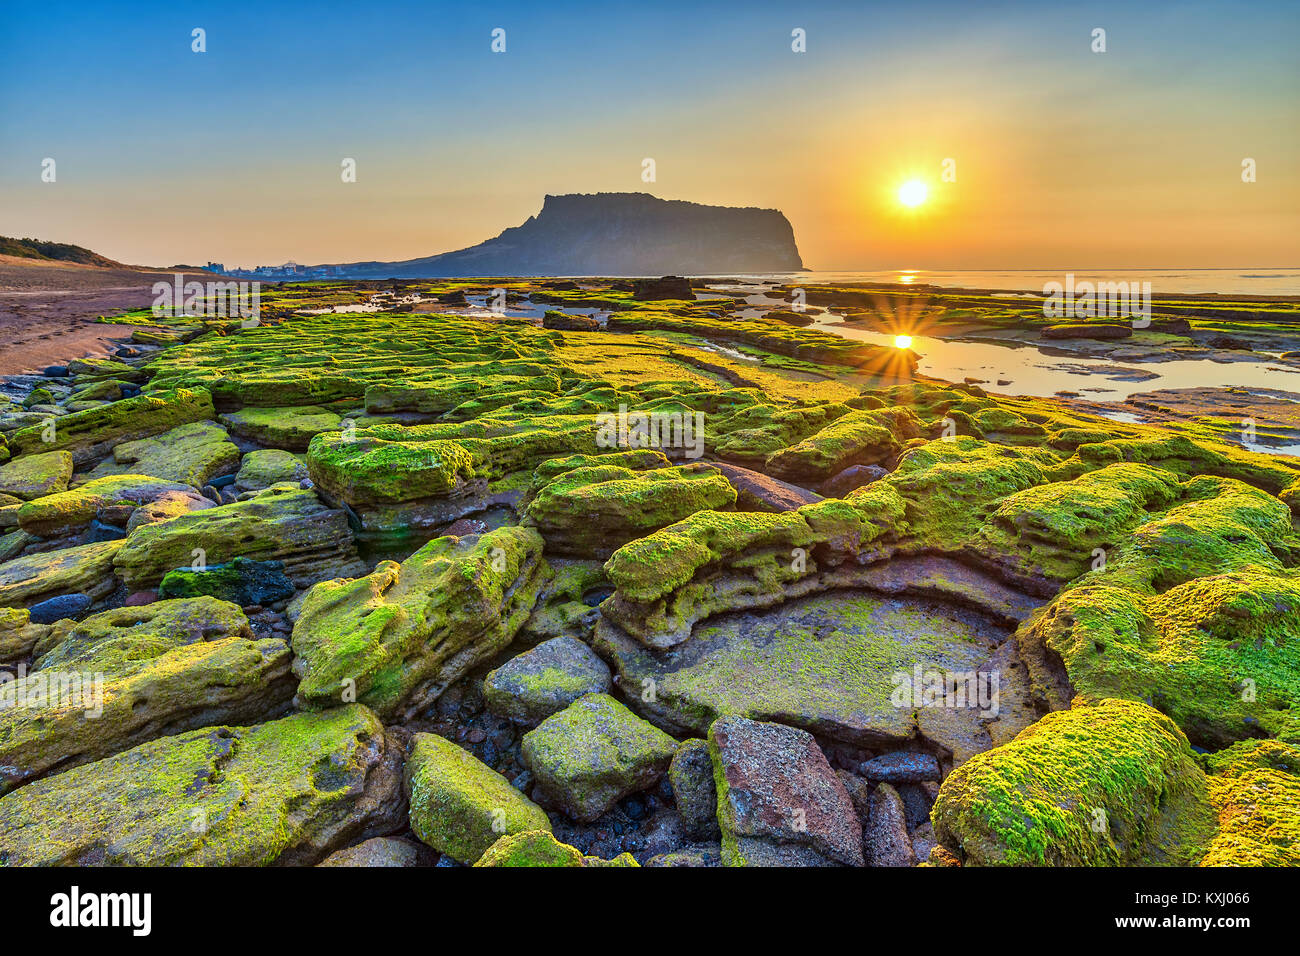 Sunrise at Jeju Do Seongsan Ilchulbong, Jeju Island, South Korea - Stock Image